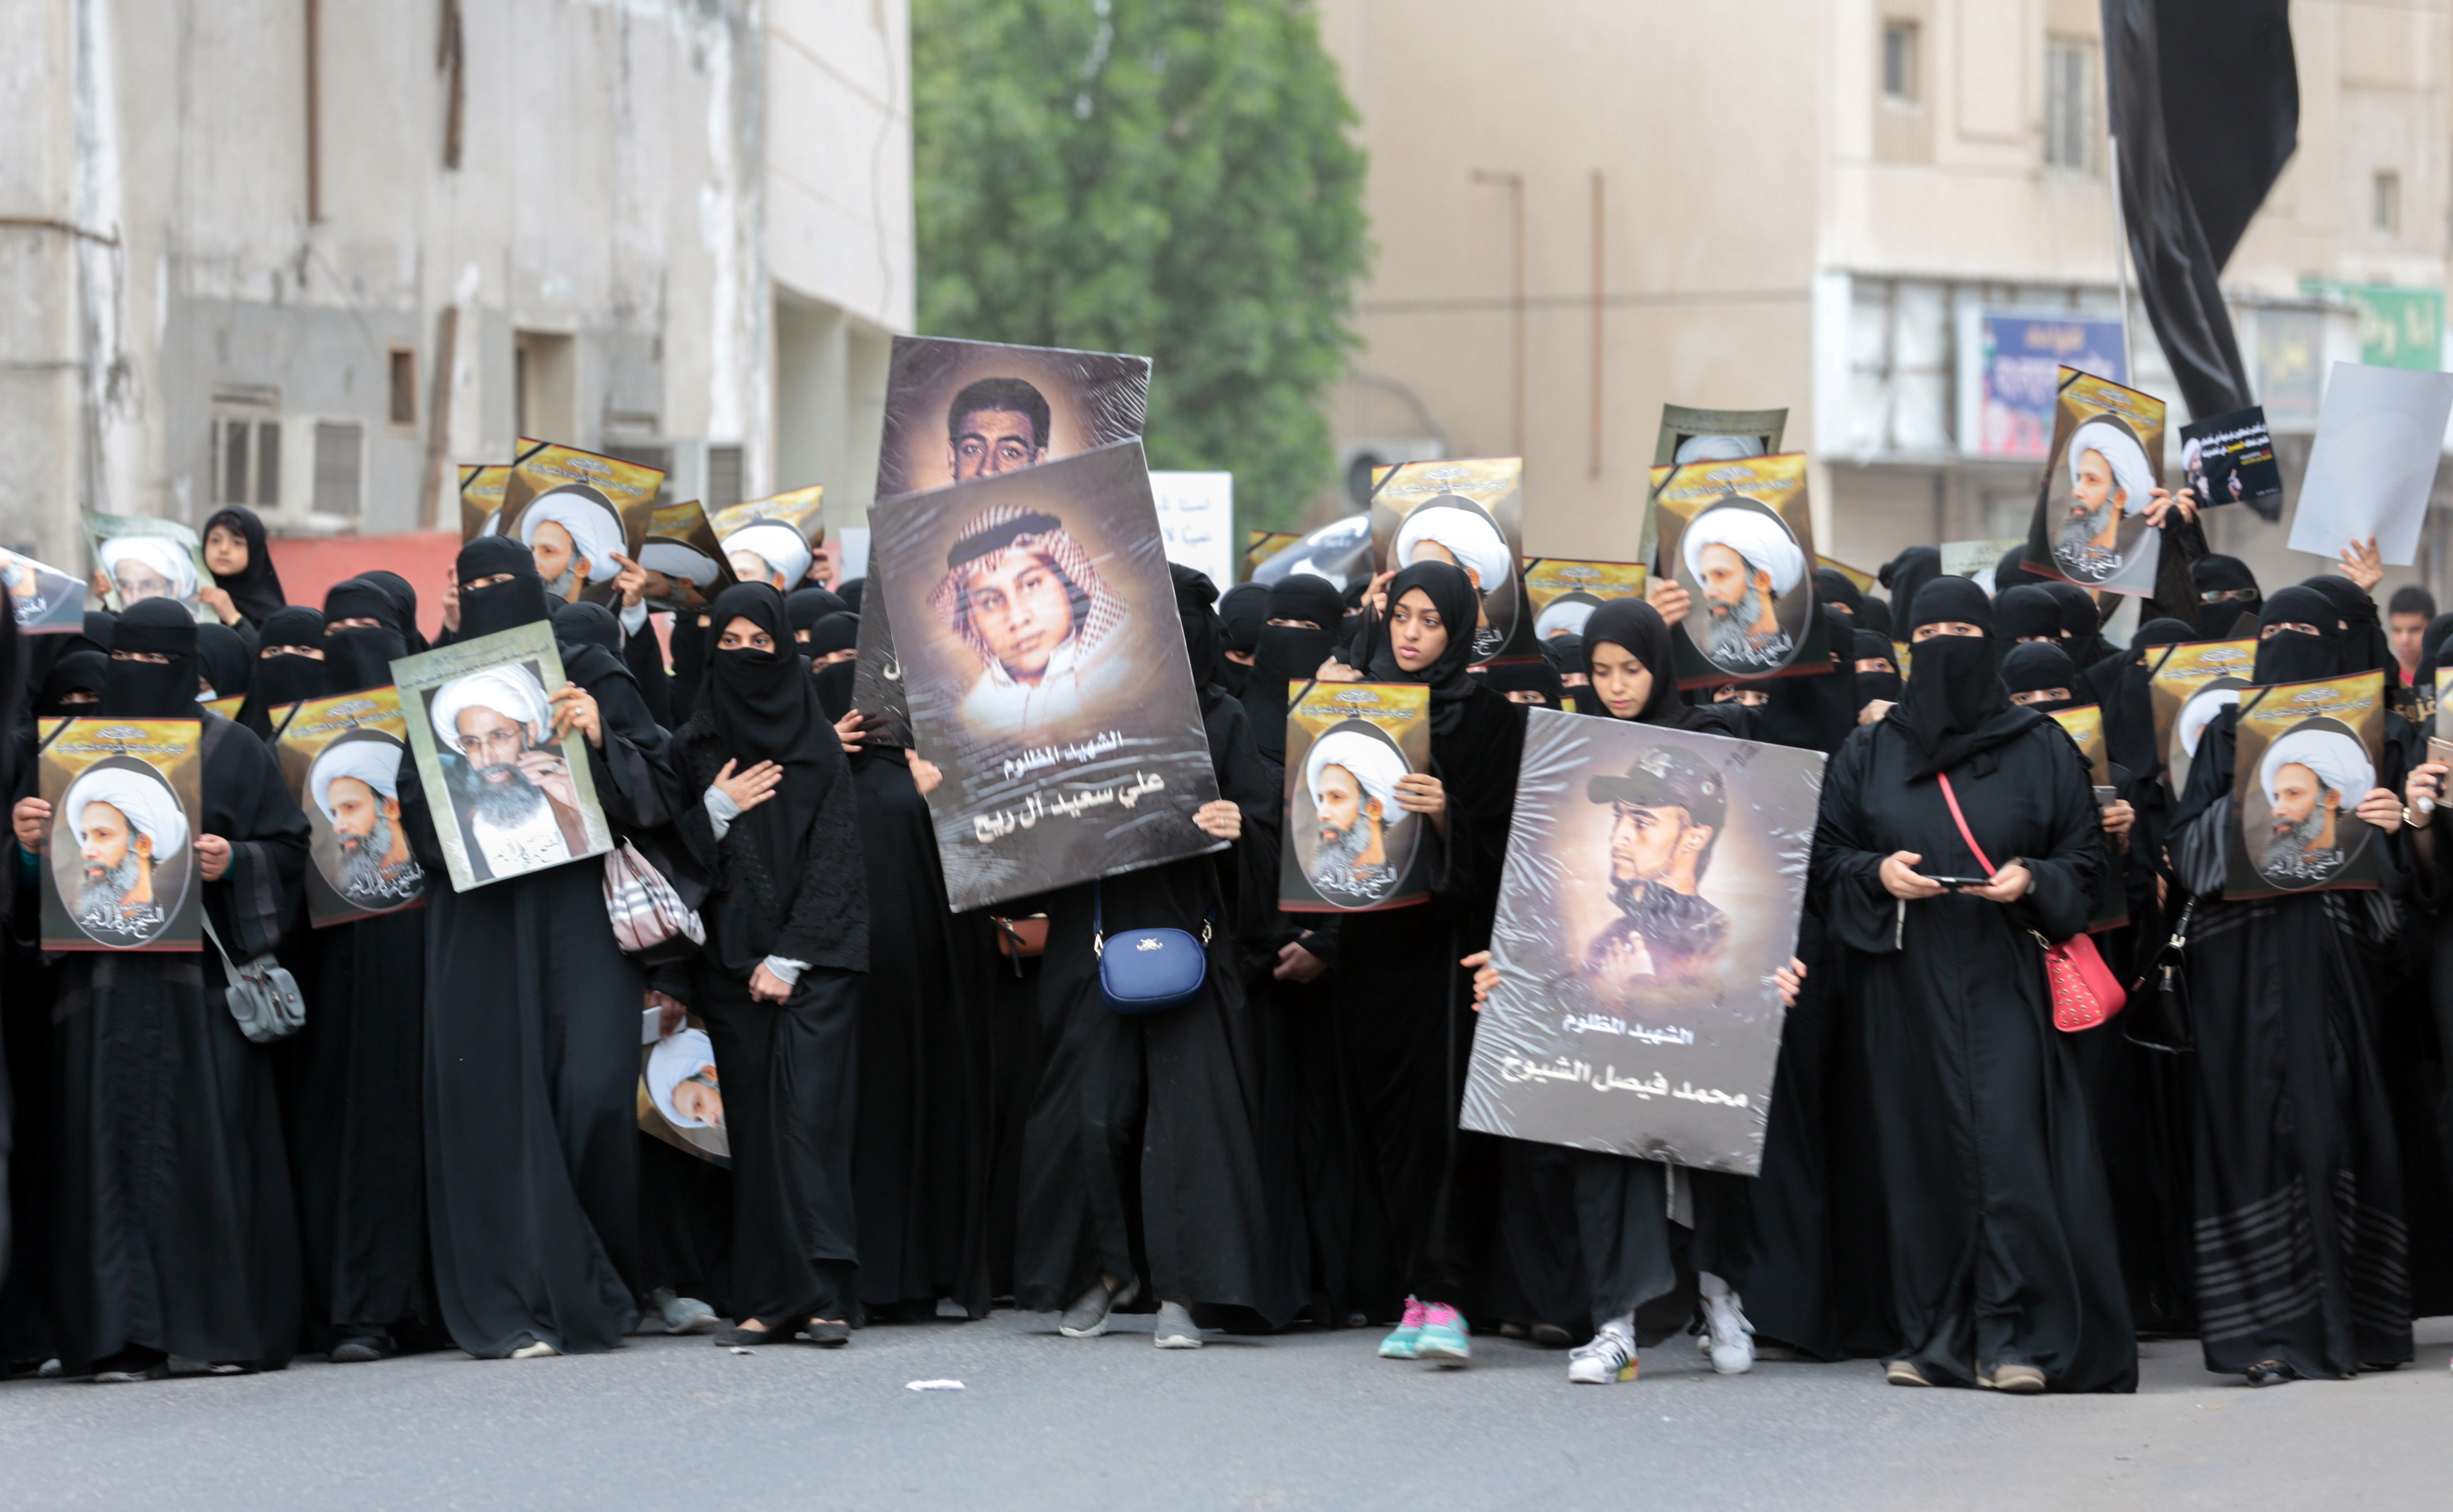 Saudi Shiite women hold placards bearing a portrait of prominent Shiite Muslim cleric Nimr al-Nimr during a protest on 8 January, 2016 in Qatif (AFP)